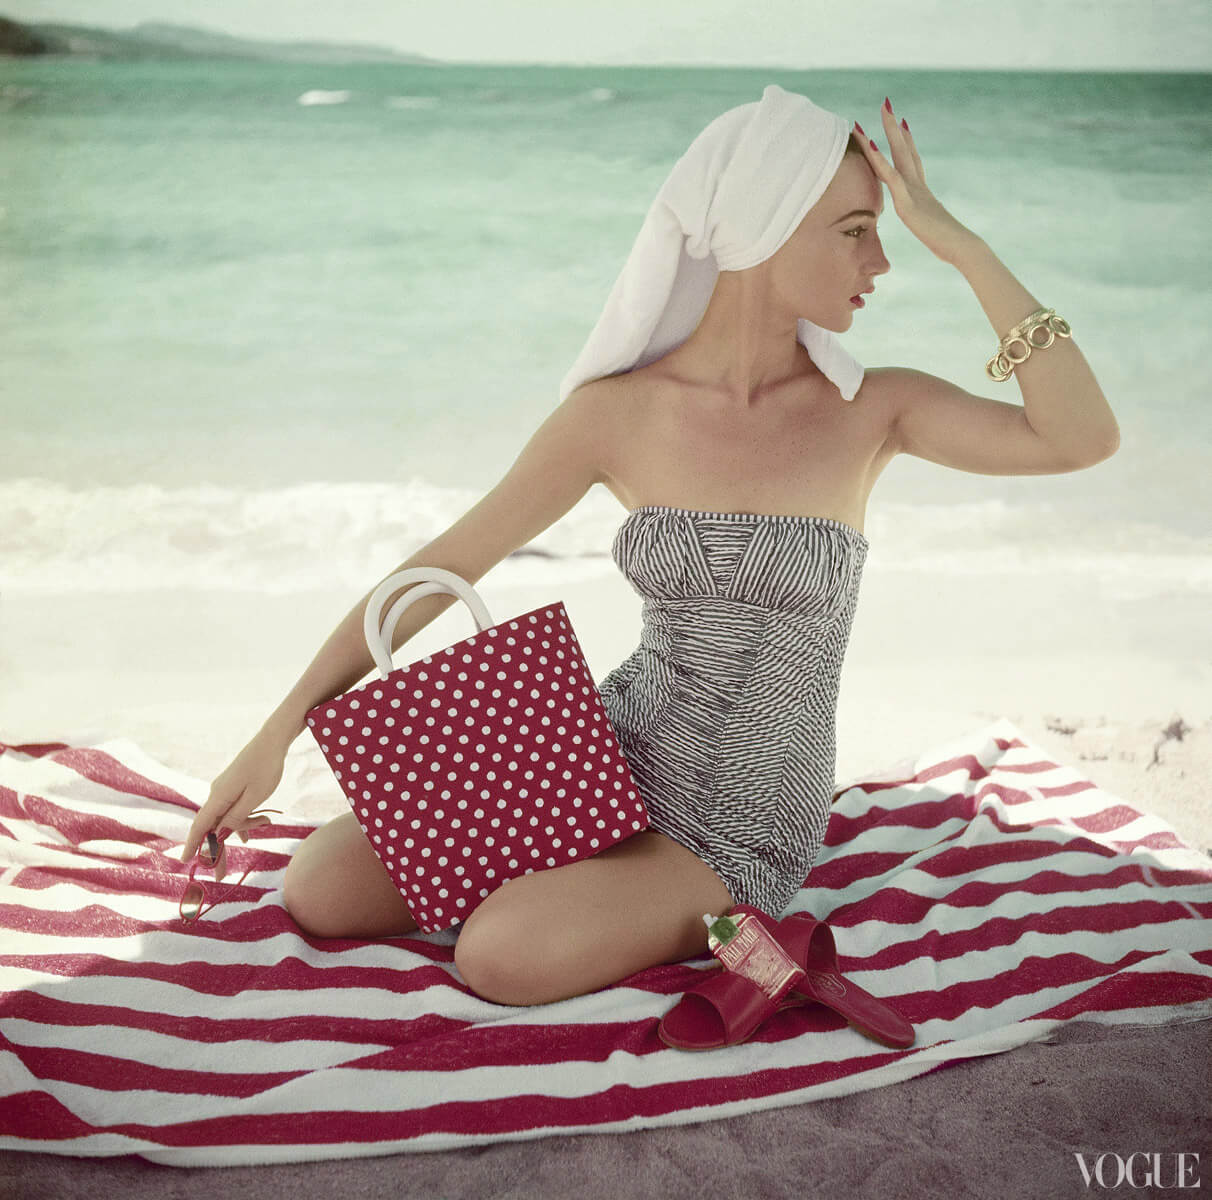 bathing suits in vogue 1954 05 prigent 11424639016 Vademecum estivo in stile k beauty